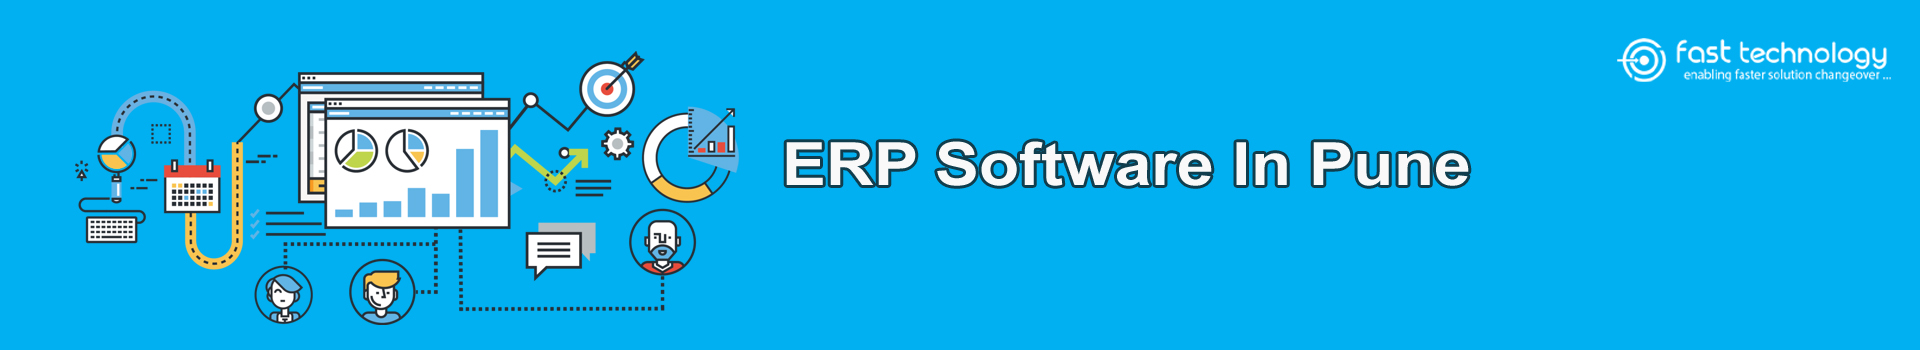 erp-software-in-pune